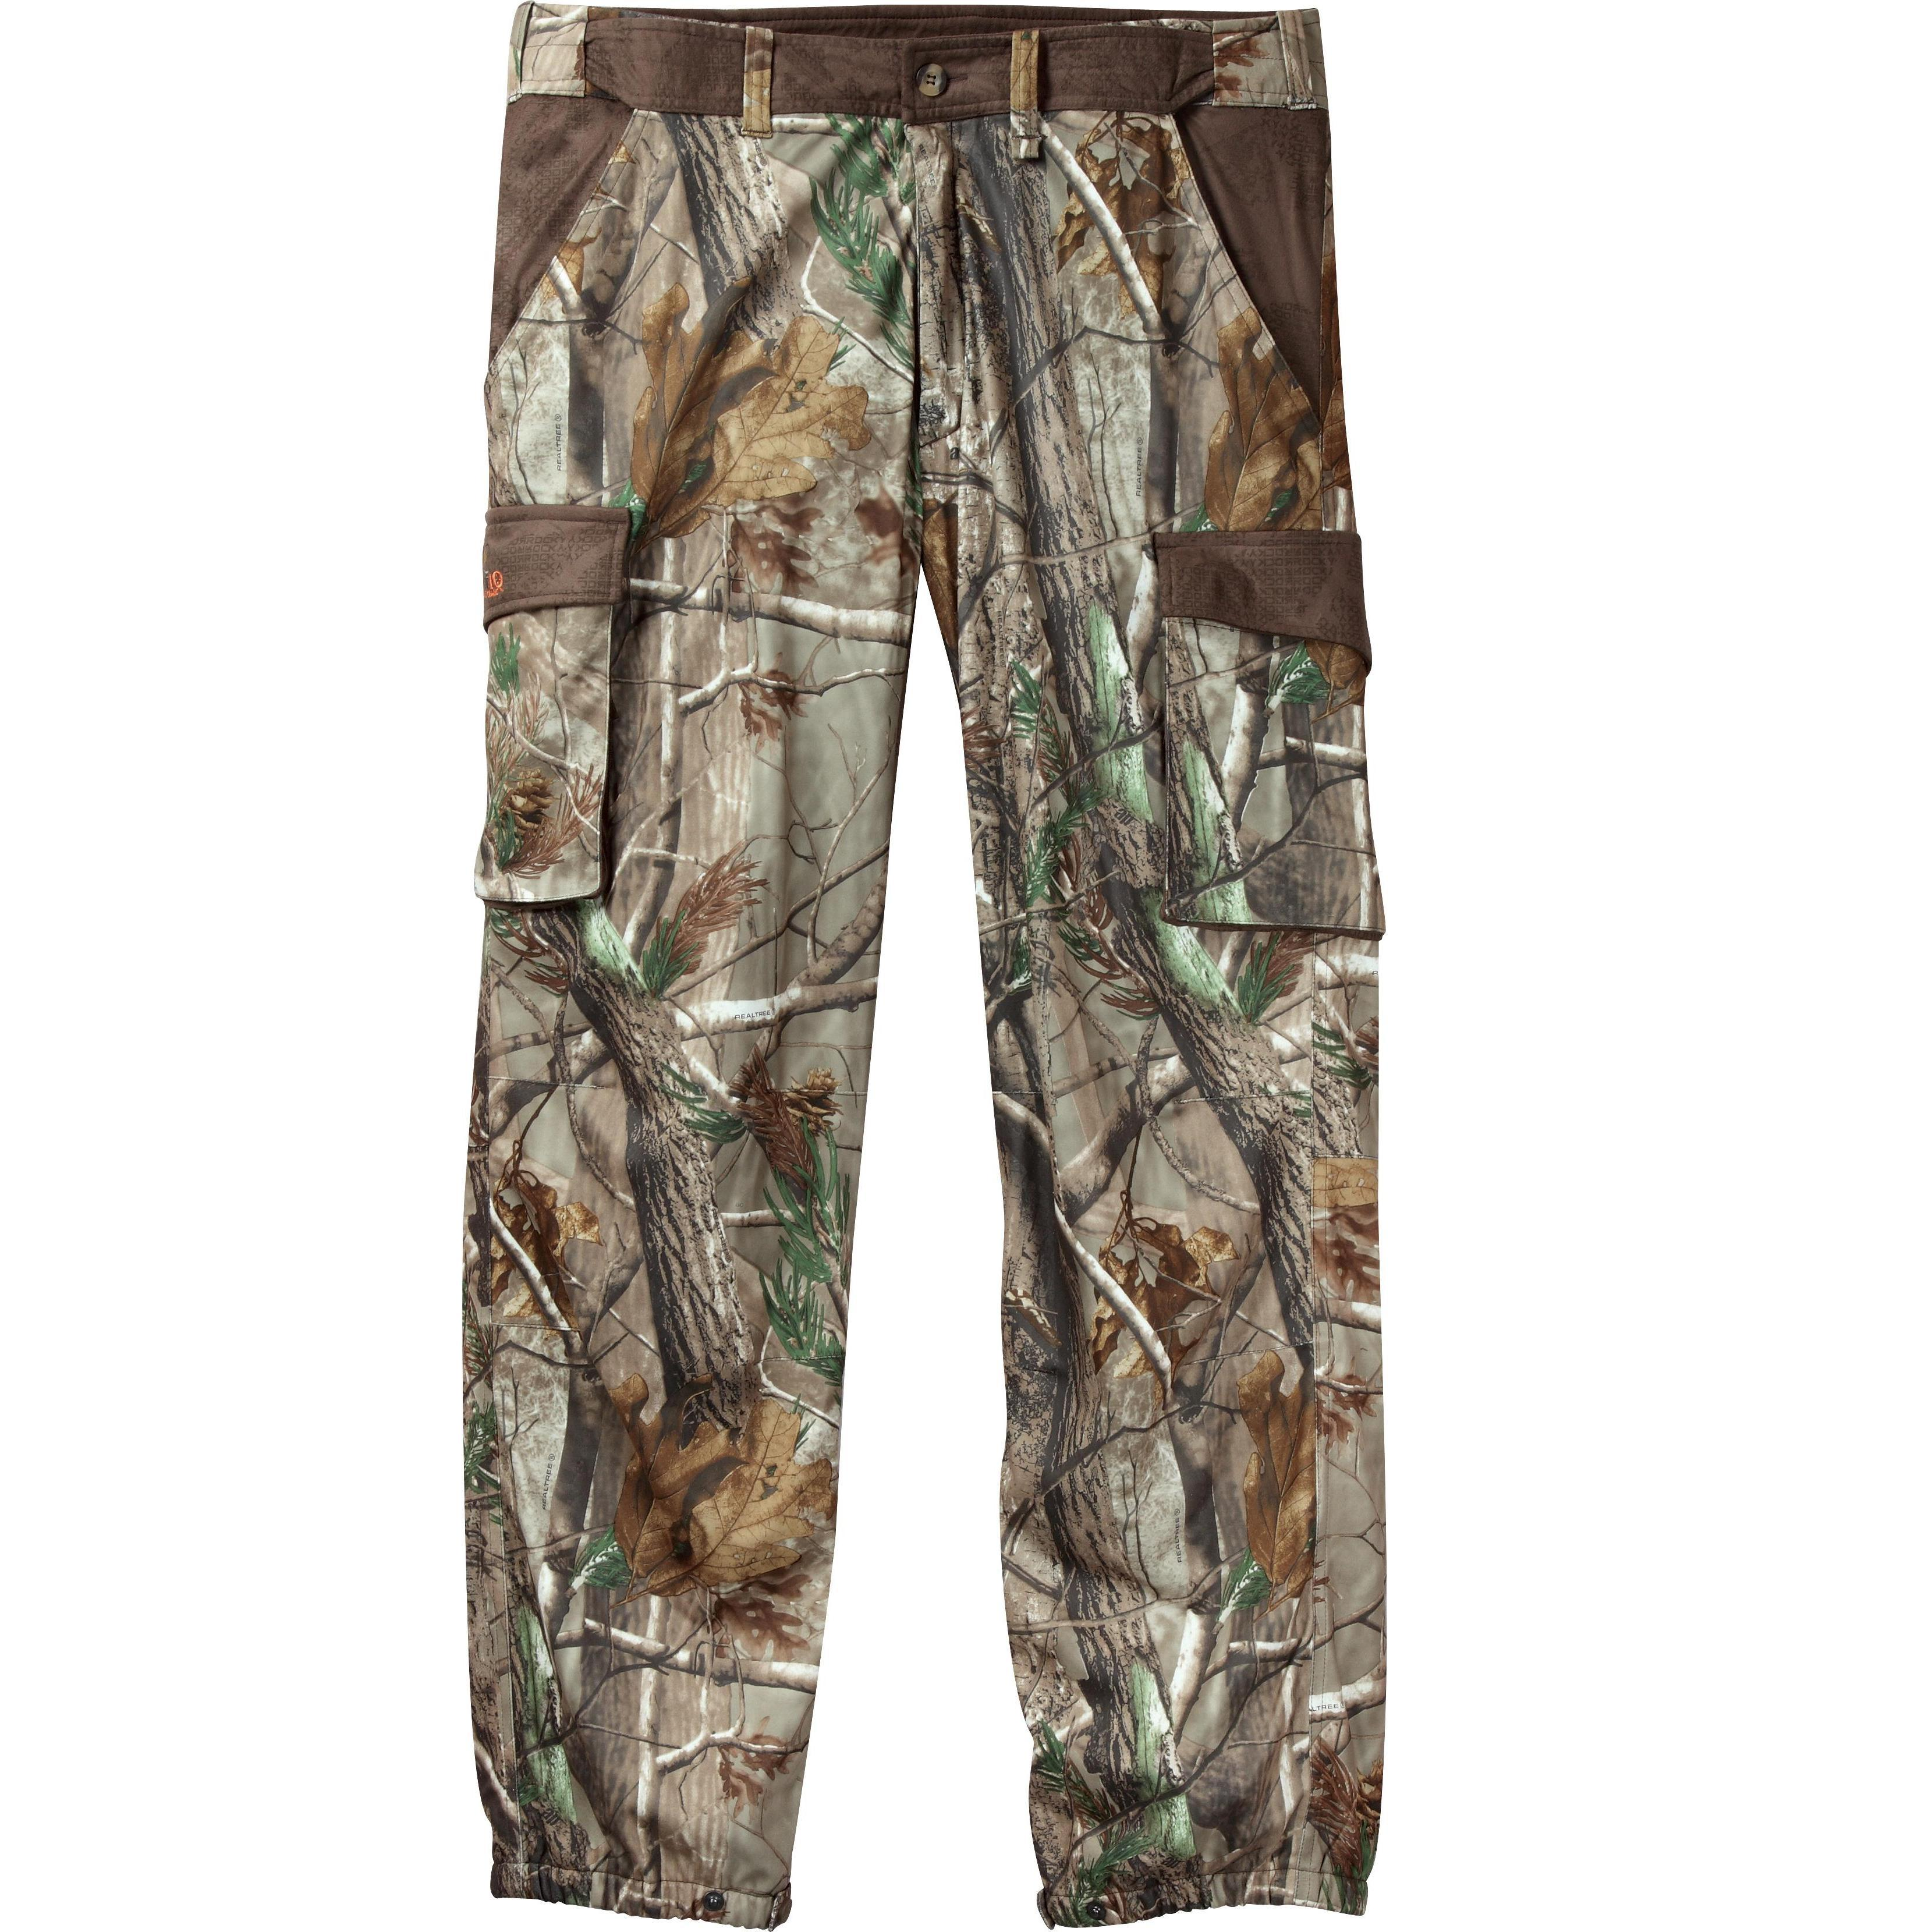 61c01048bfe Camouflage Hunting Pants - Collections Pants Photo Parkerforsenate.Org